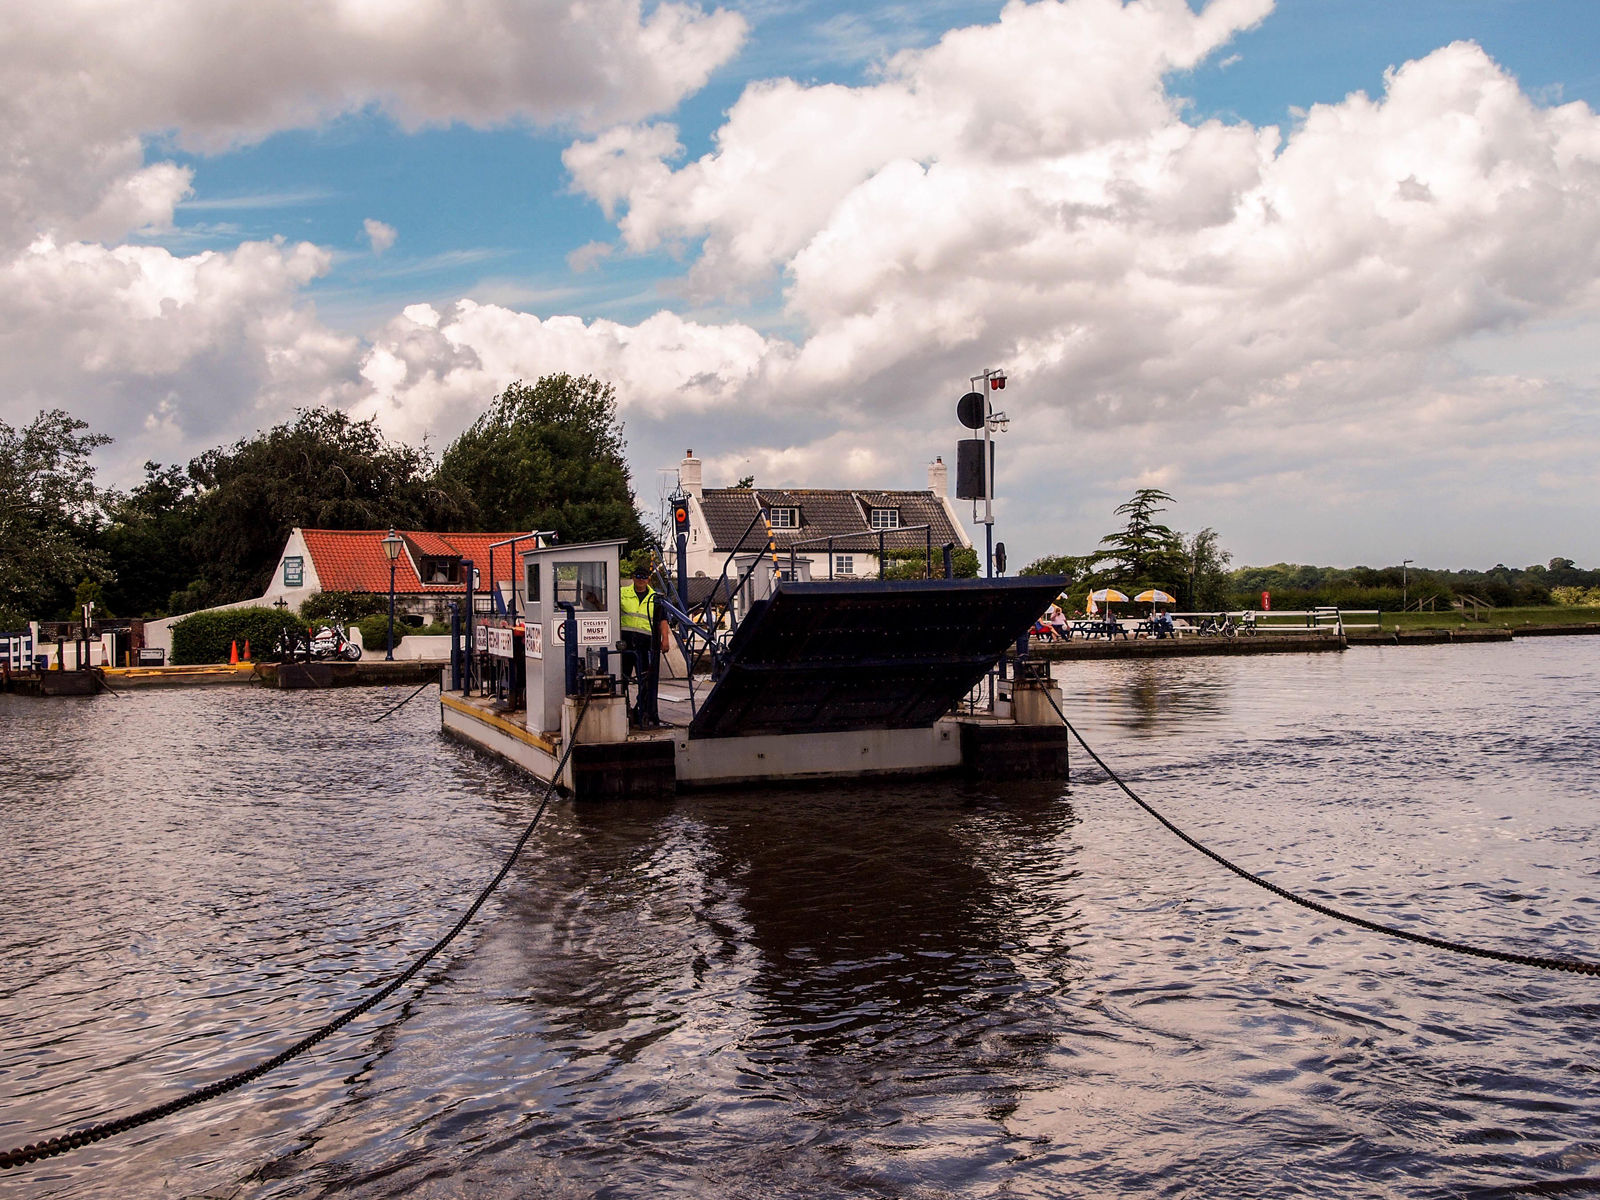 Reedham Chain Ferry